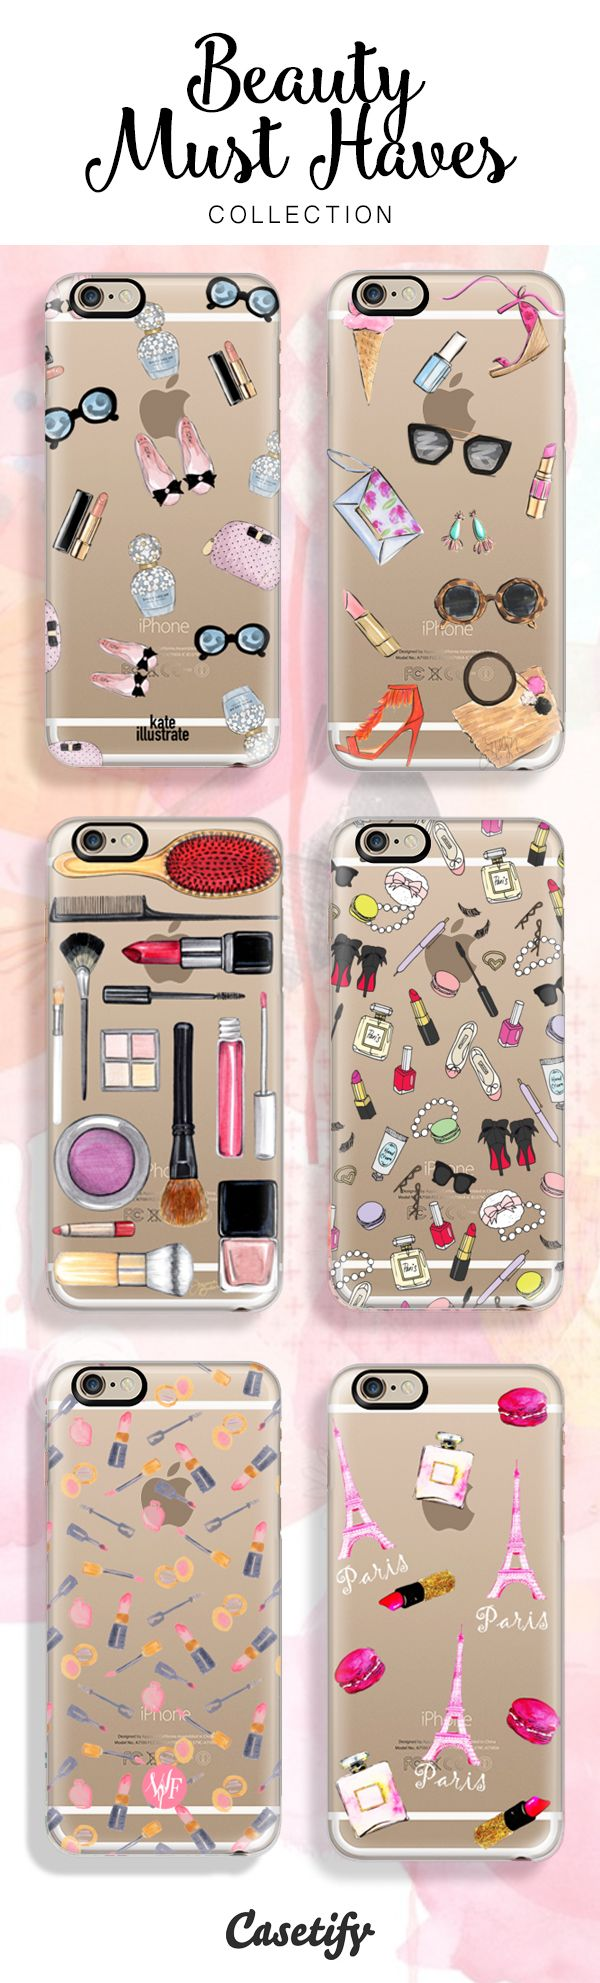 Some of our Beauty Must Haves now available: http://www.casetify.com/artworks/fxEvLWdQsk